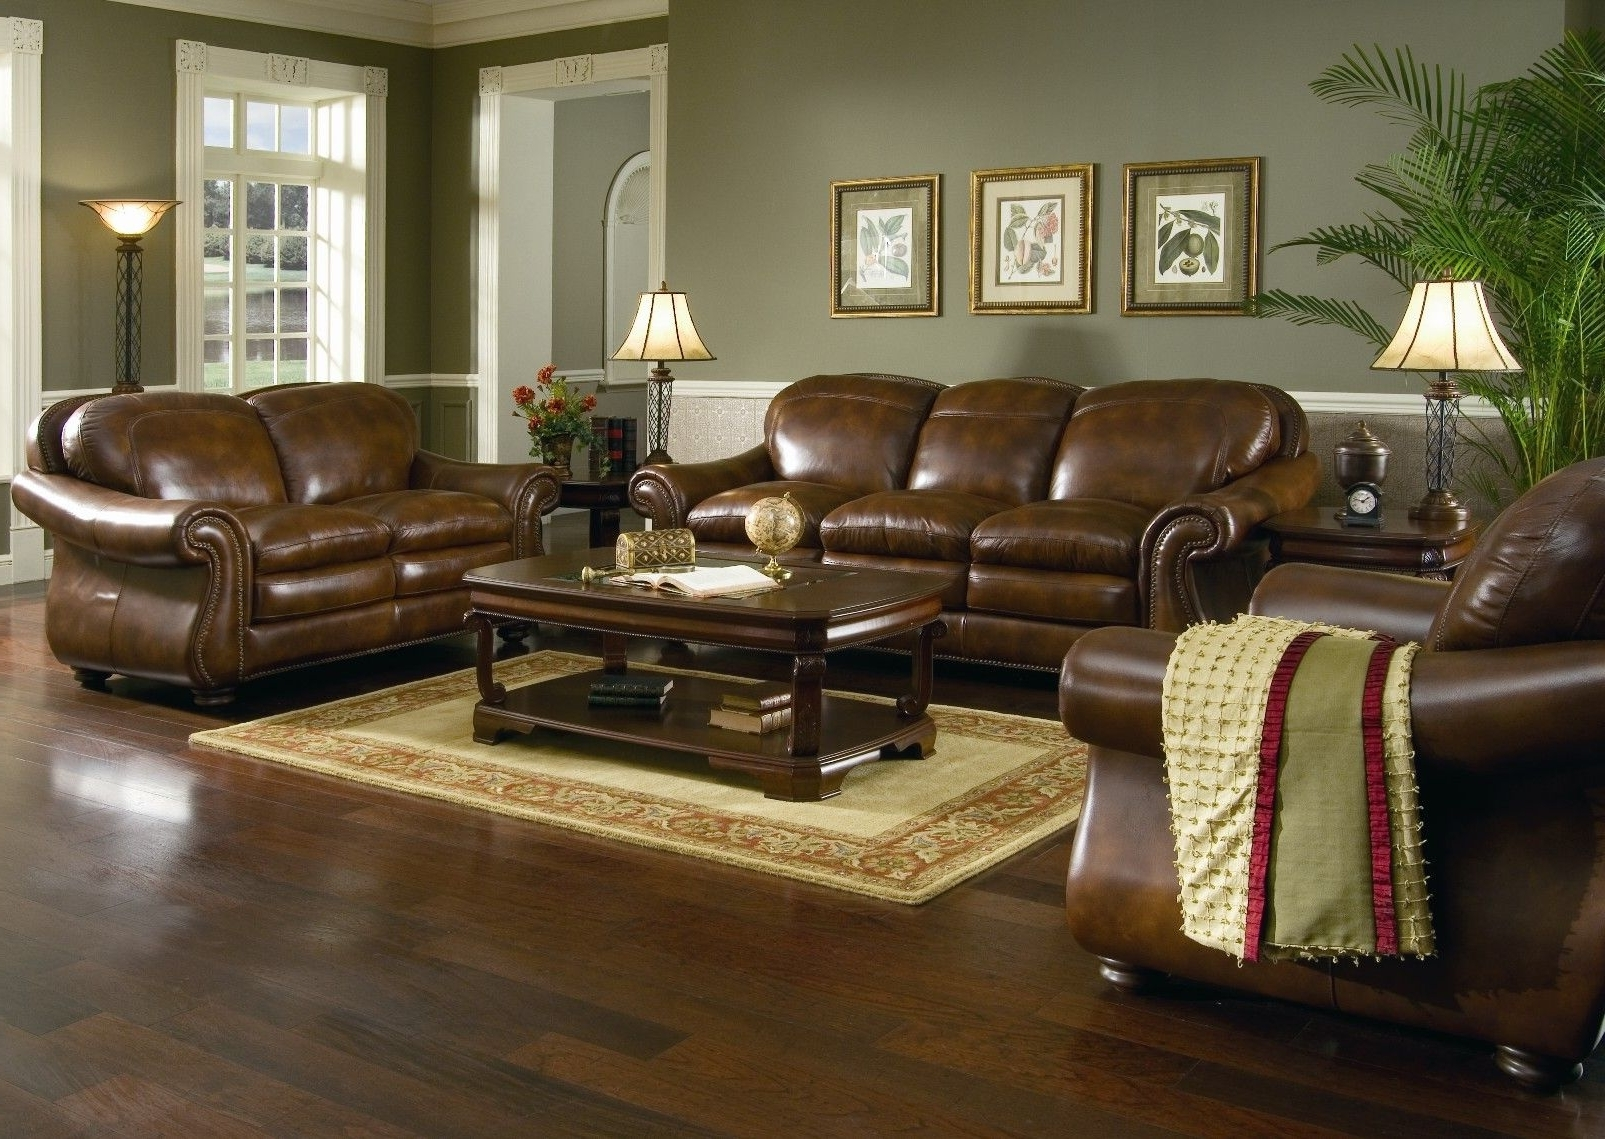 Most Current Colorful Sofas And Chairs For Brown Leather Sofa Set For Living Room With Dark Hardwood Floors (View 11 of 20)